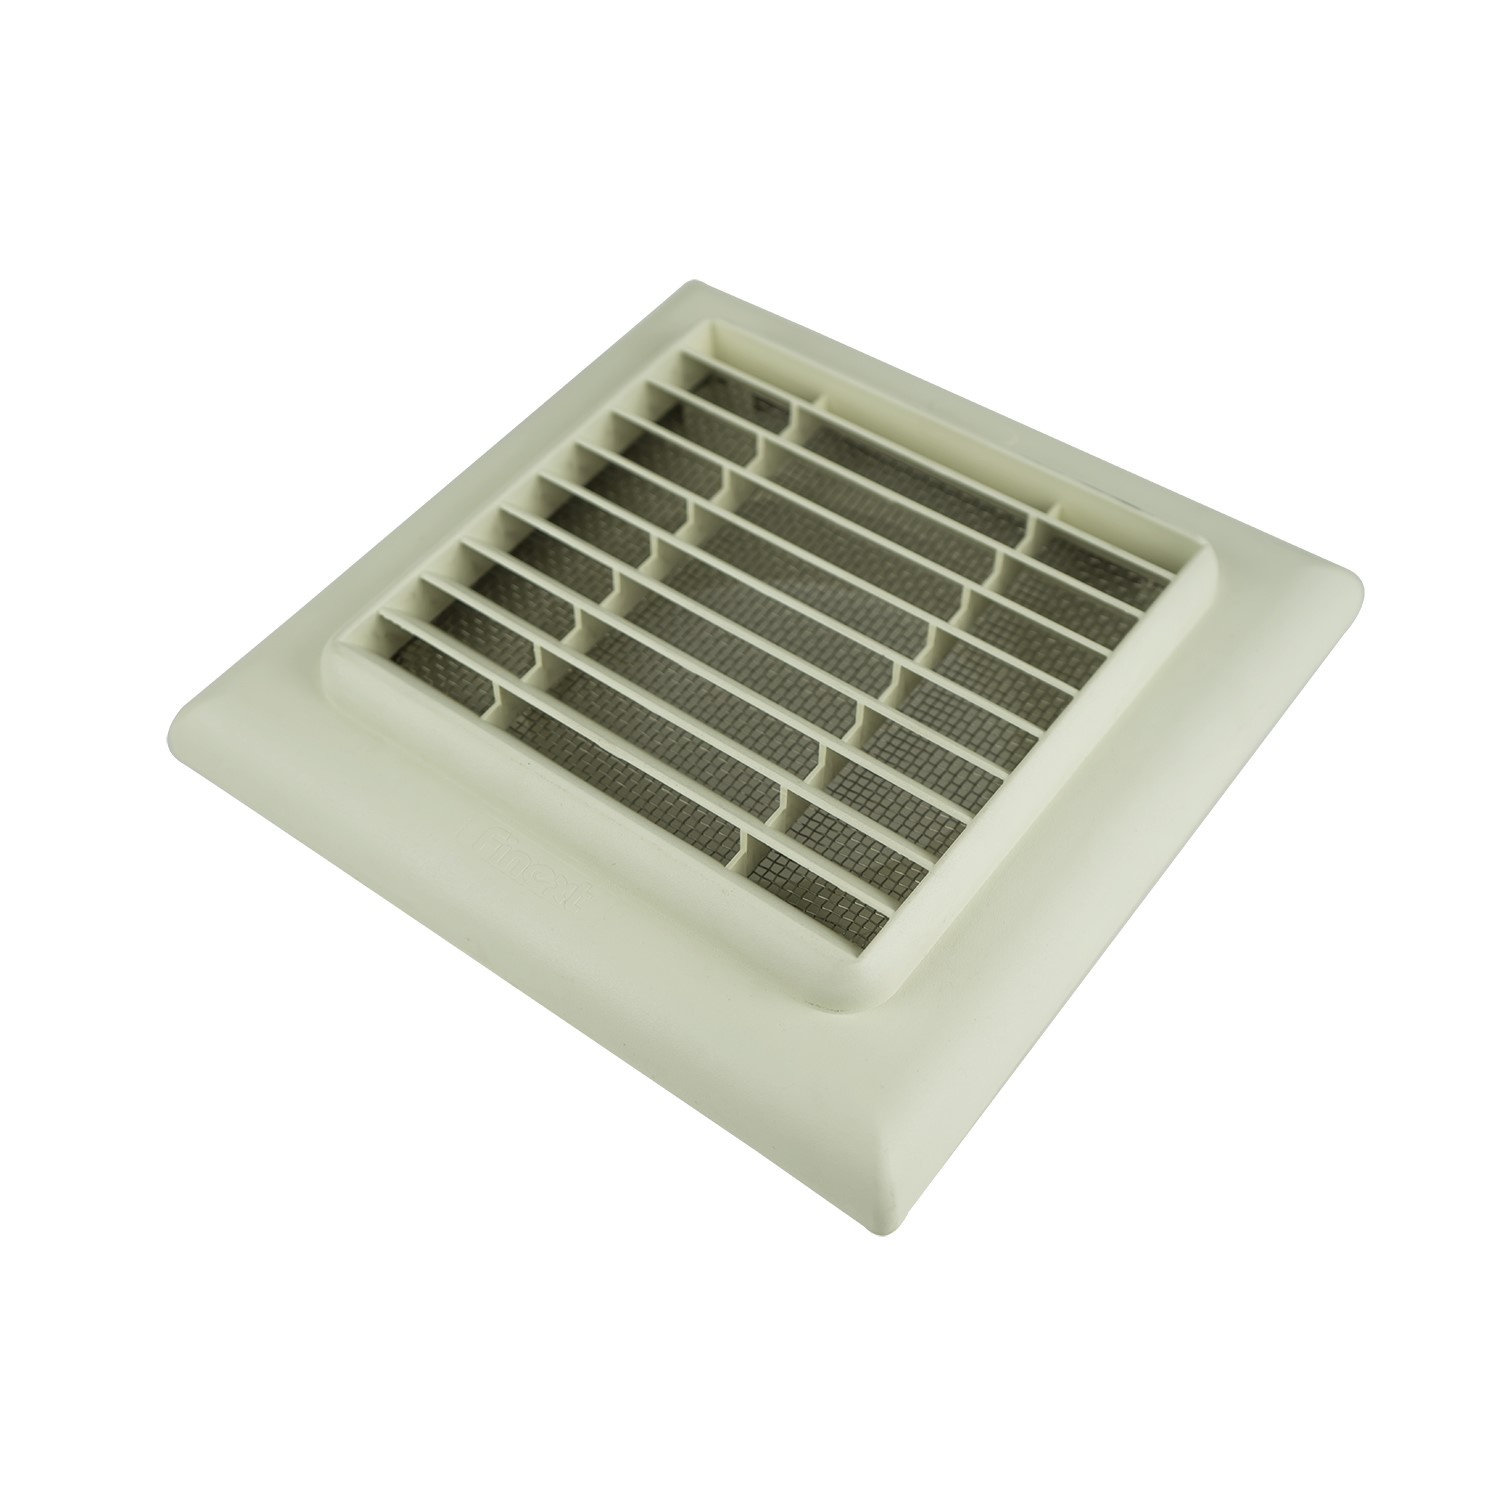 universal 150mm diameter kitchen cooker hood 3m ducting vent kit with flat vent